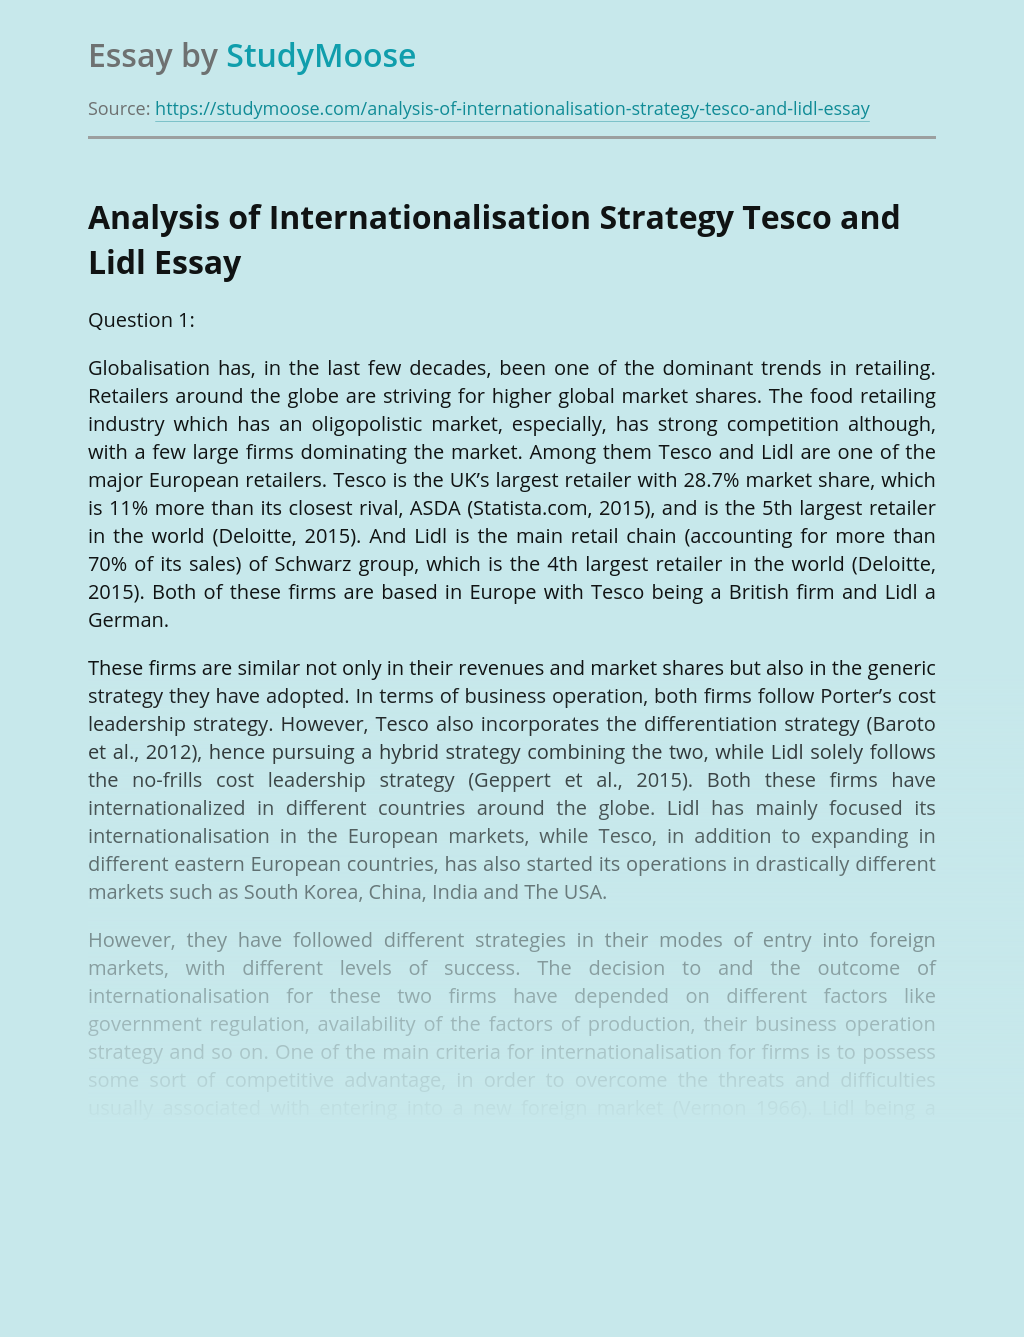 Analysis of Internationalisation Strategy Tesco and Lidl Brands